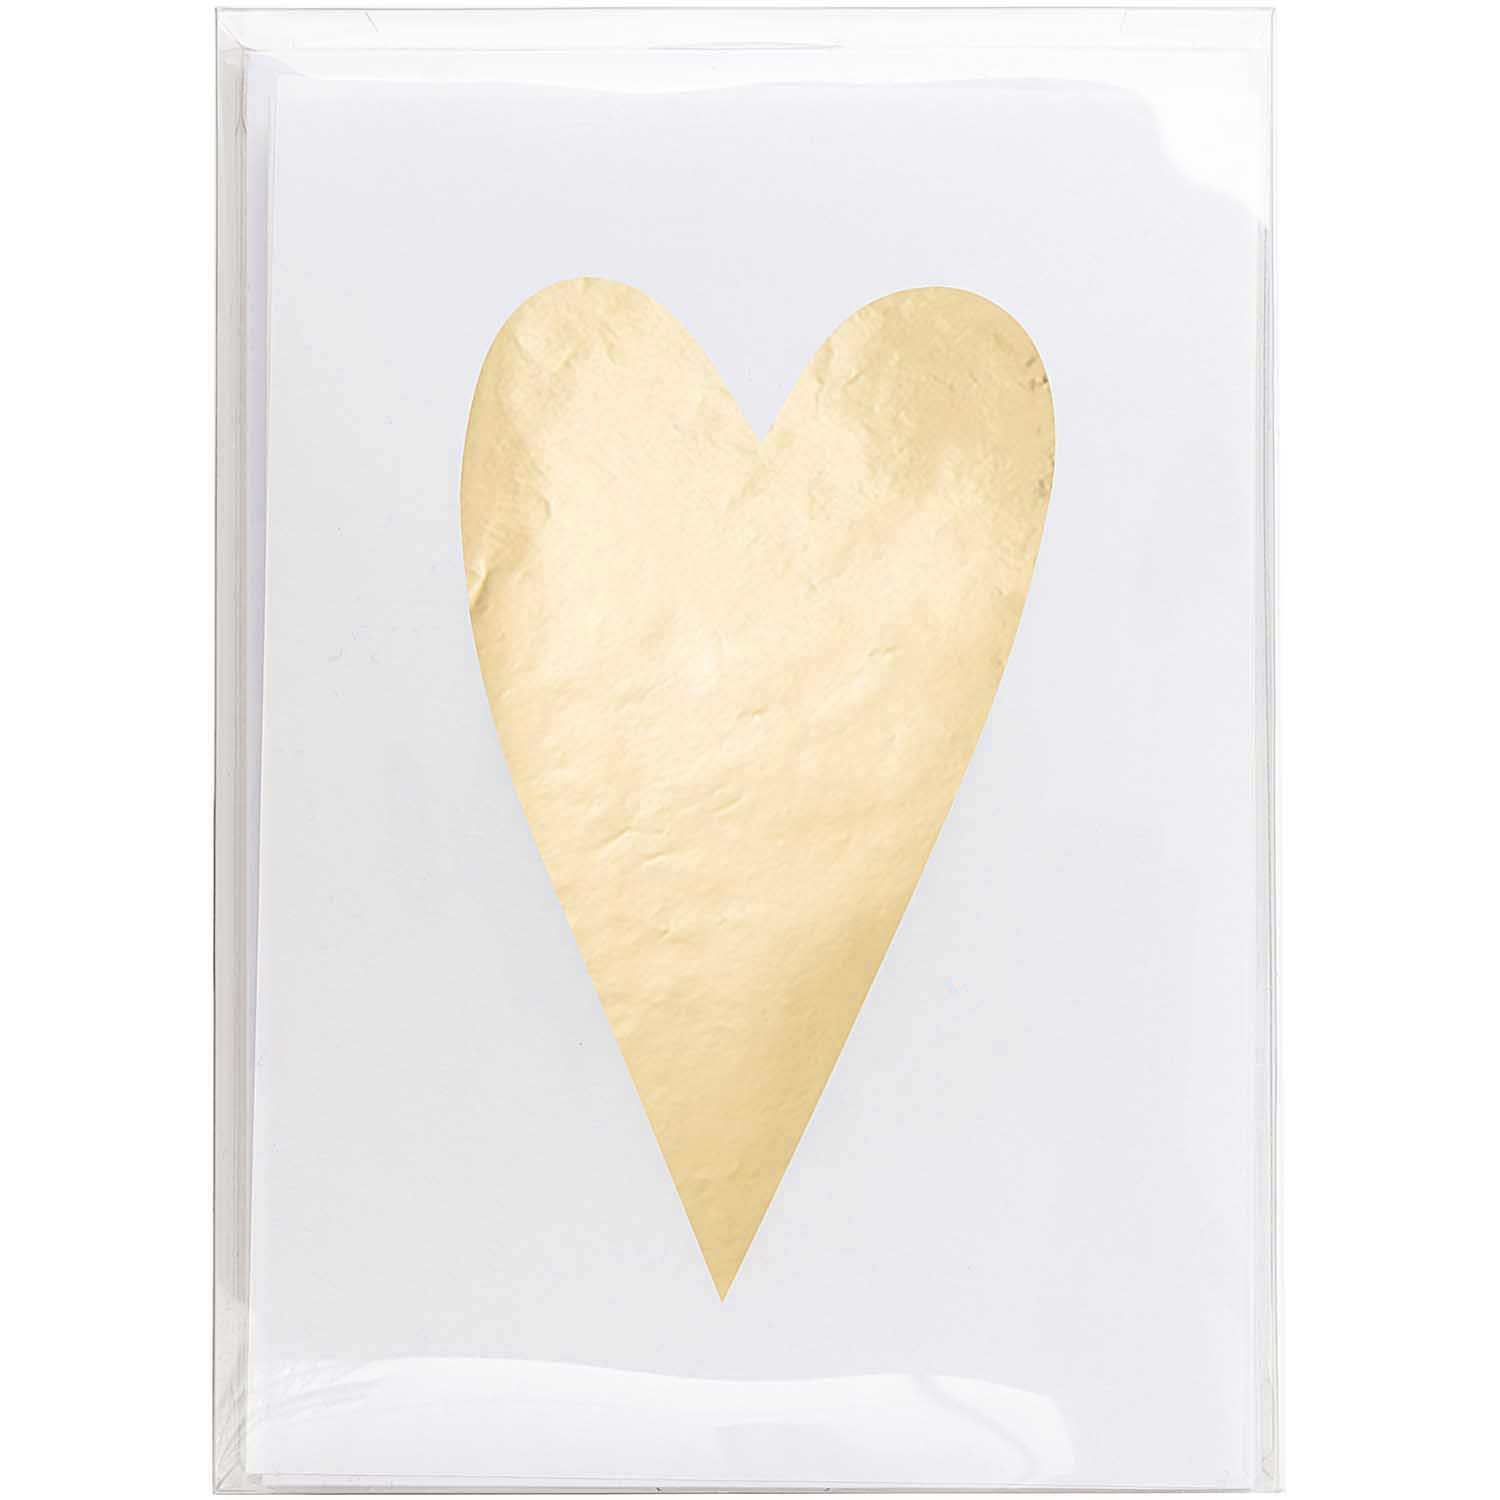 Rico NAY CARD SET, HEART, GOLD FSC MIX 10 CARDS / 10 ENVELOPES